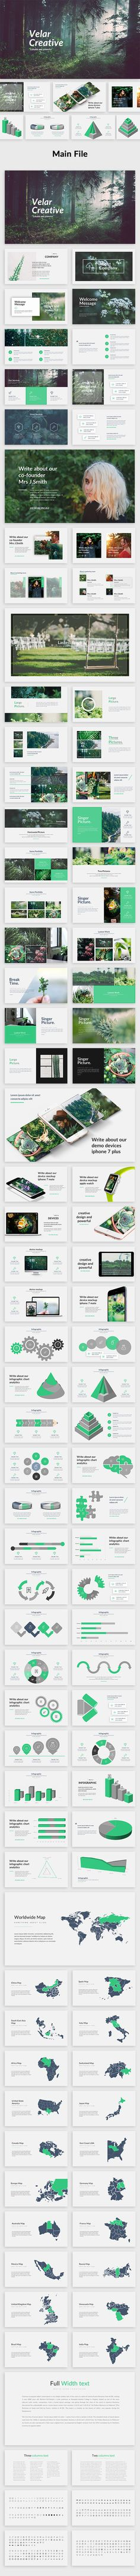 Velar - Creative #Powerpoint Template - #Creative PowerPoint Templates Download here: https://graphicriver.net/item/velar-creative-powerpoint-template/19616813?ref=alena994